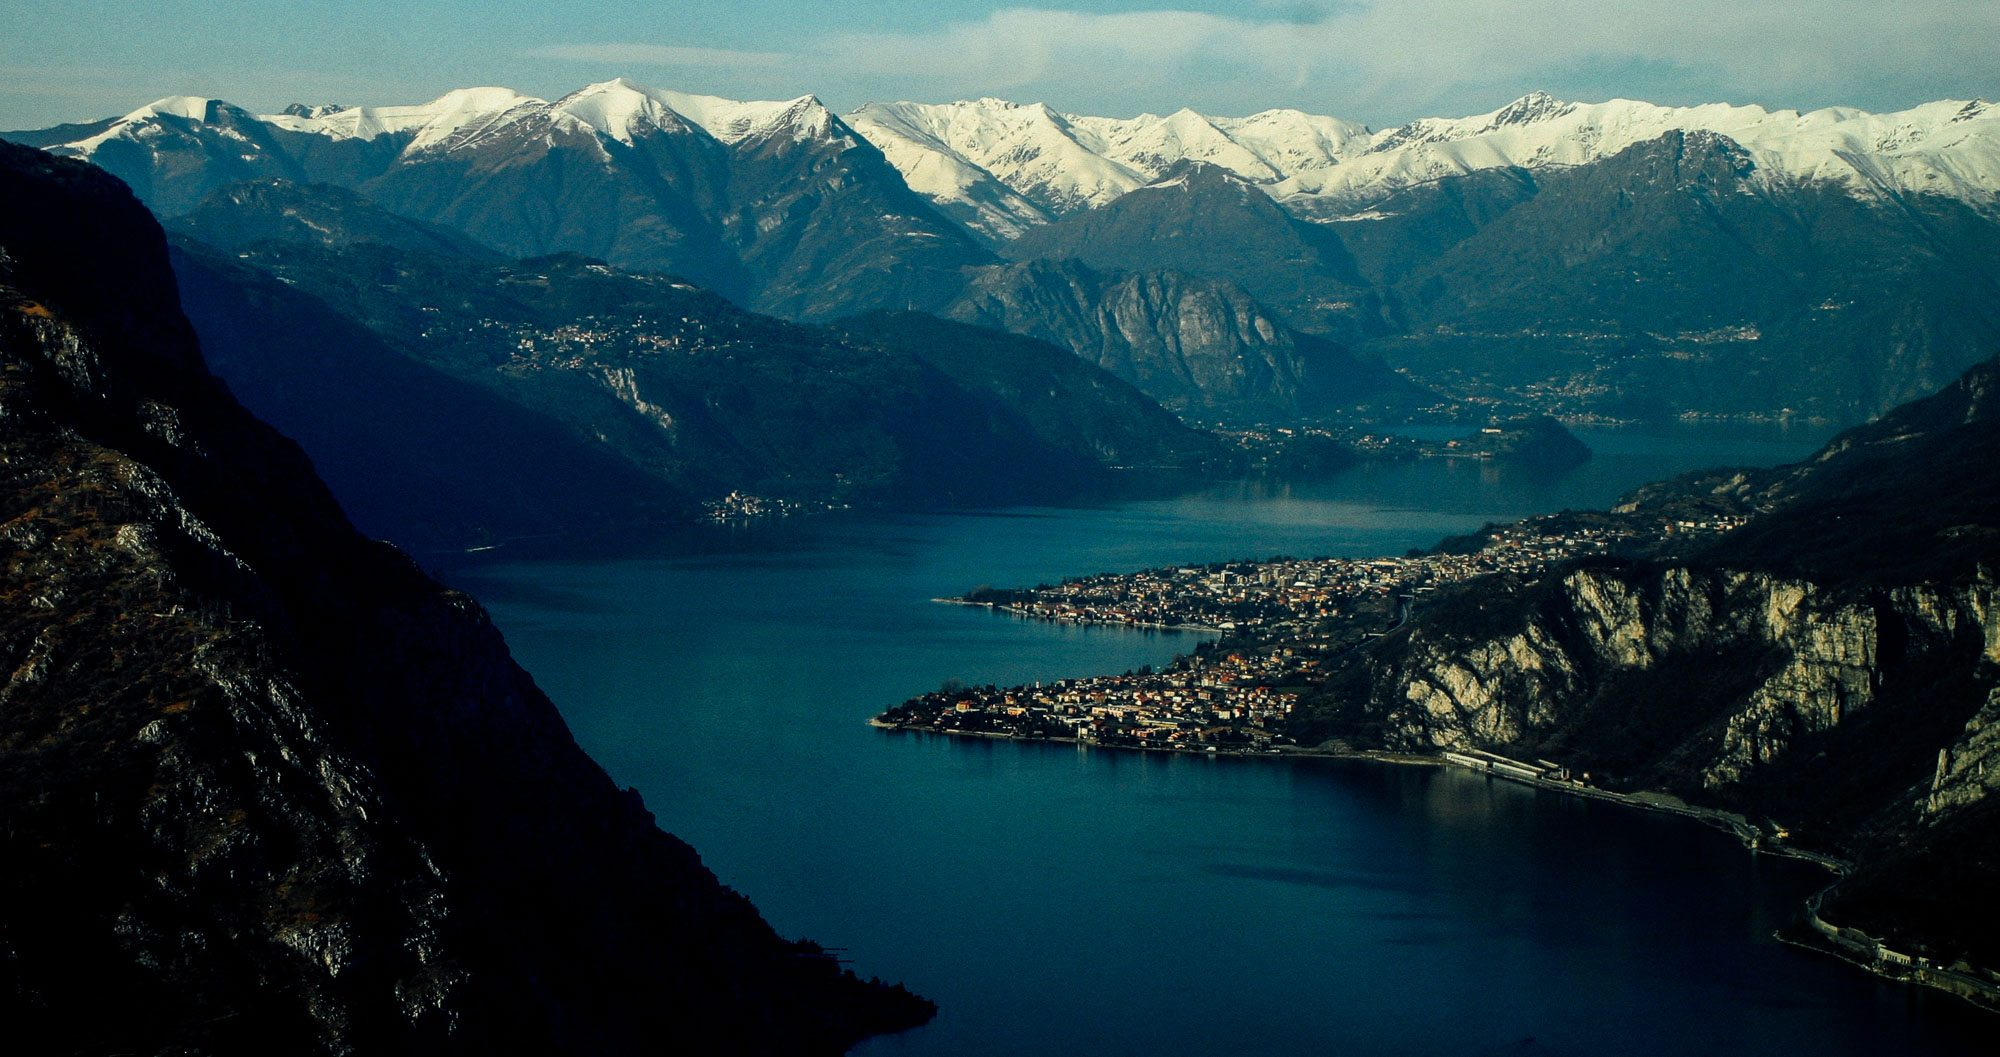 Lake Como, in the foothills of the Italian Alps, is a destination frequented often by our touring teams